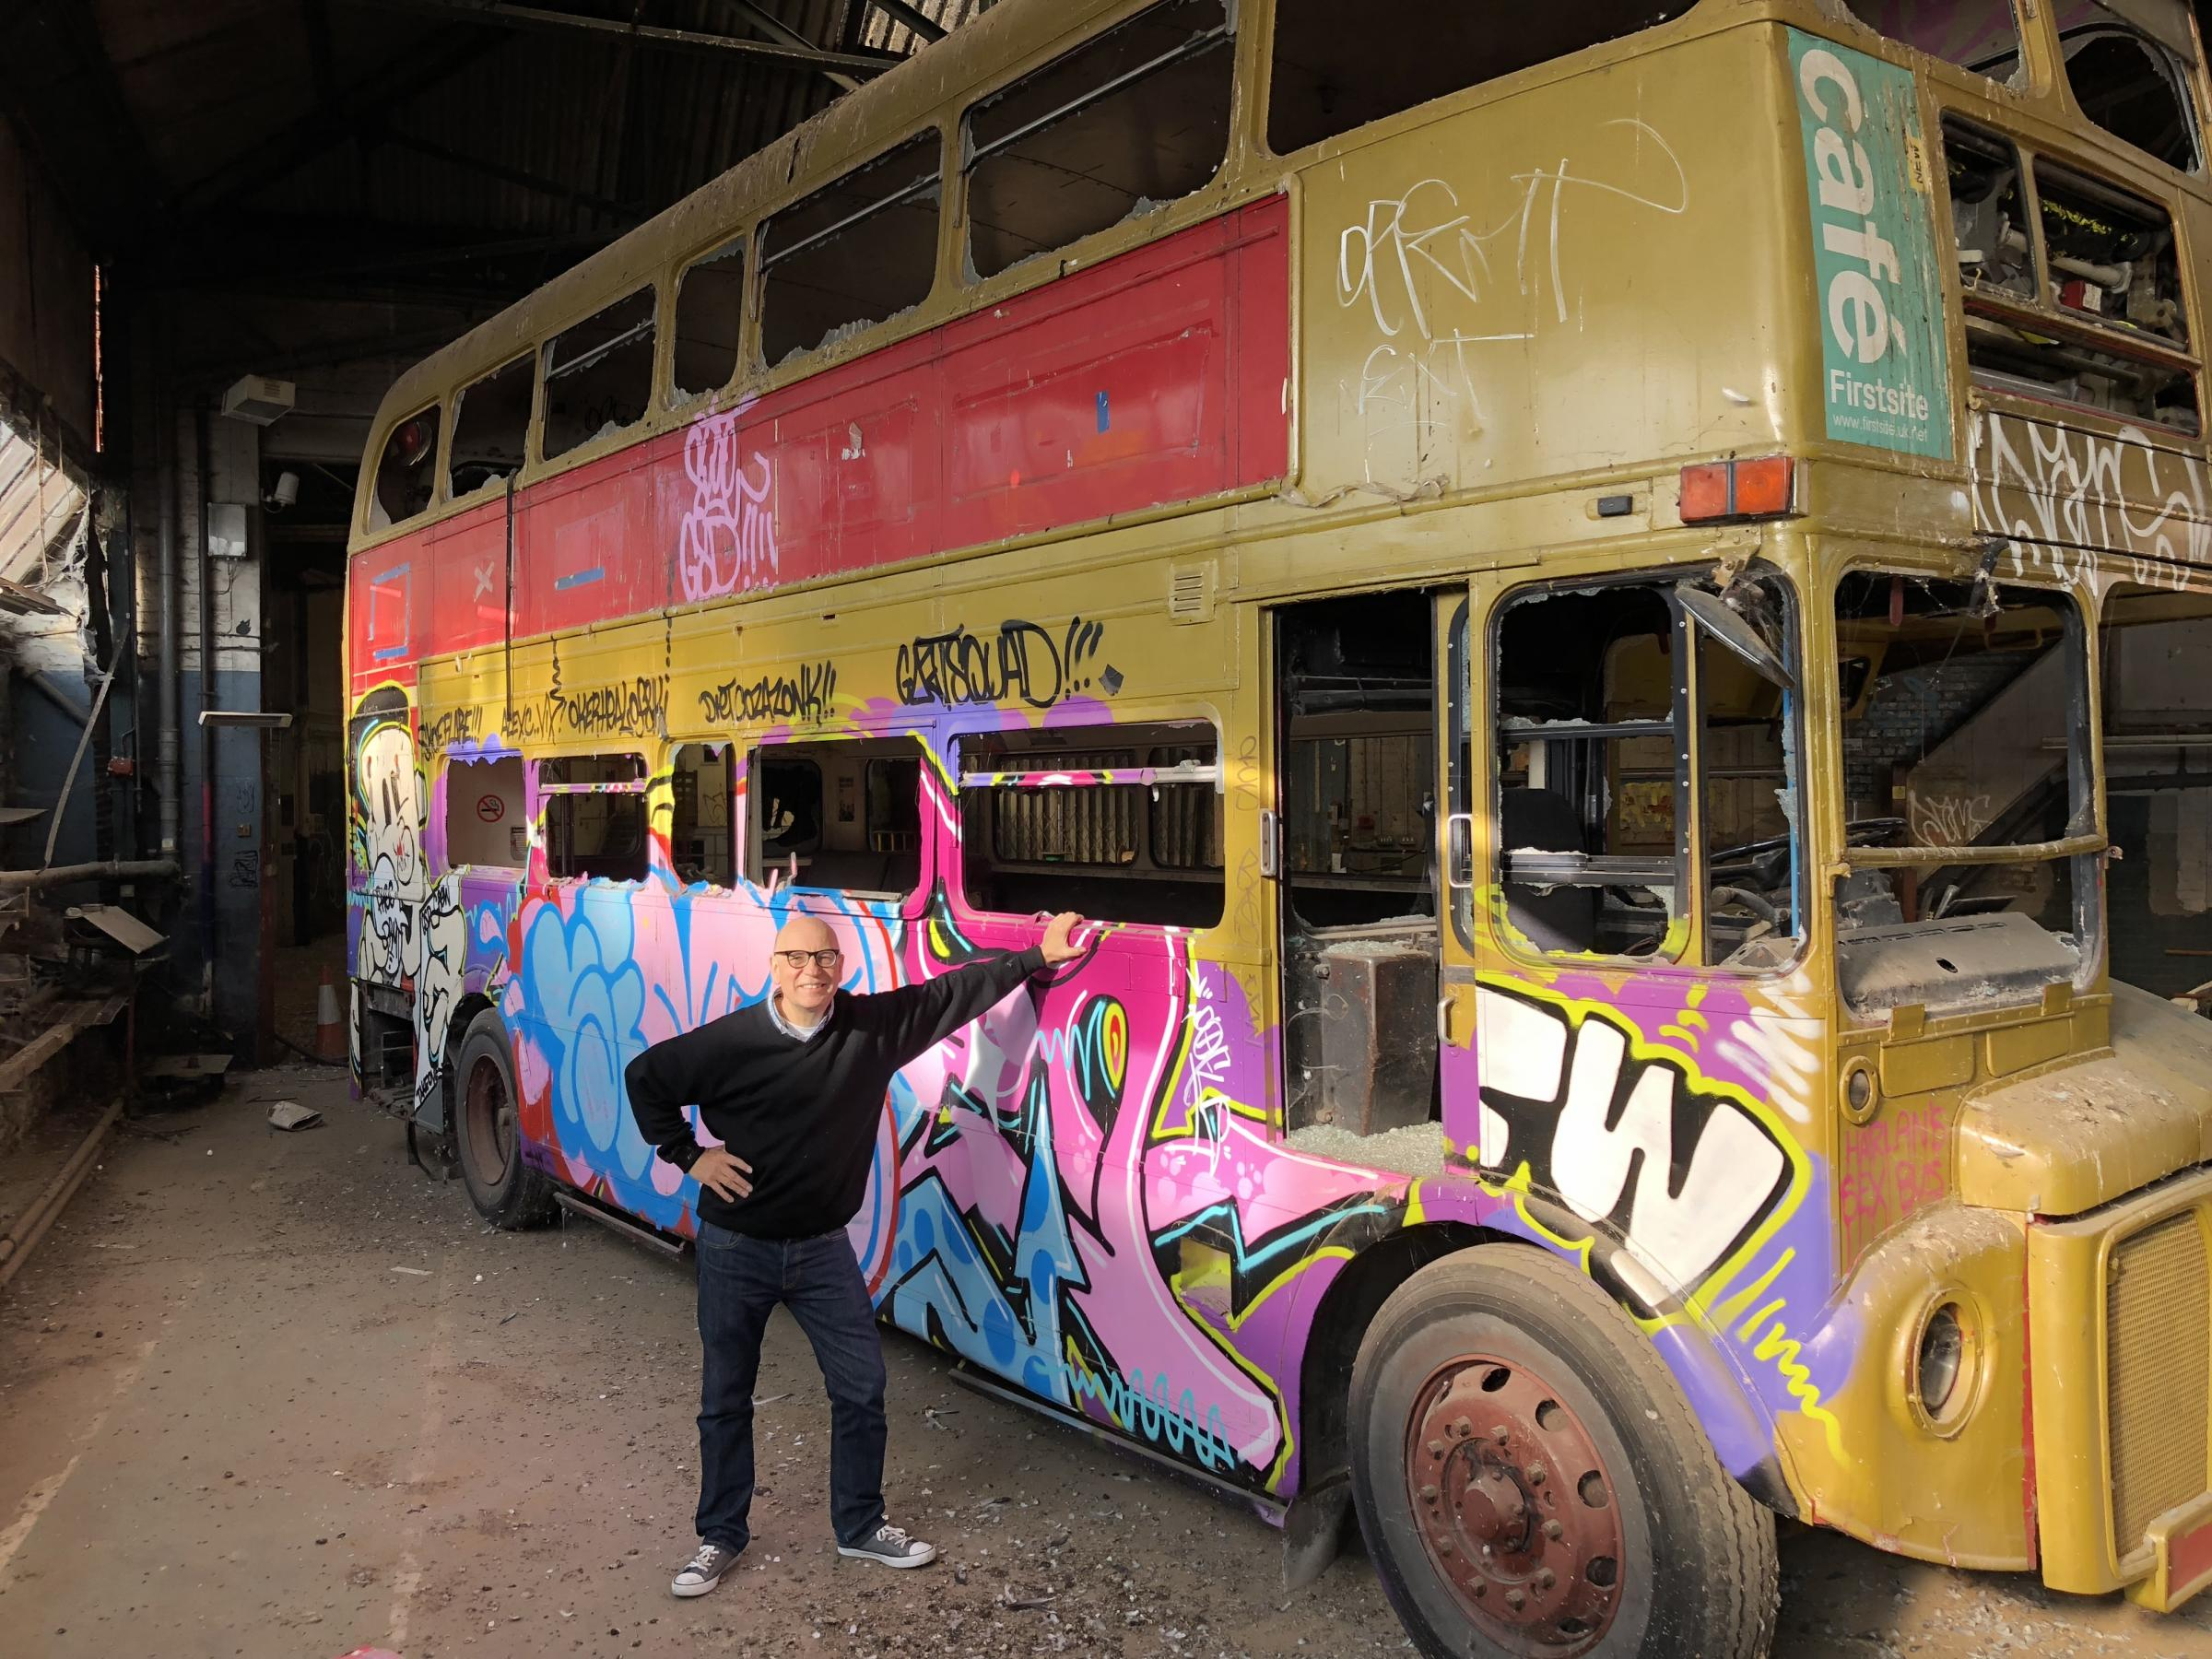 Anthony Roberts' magic bus